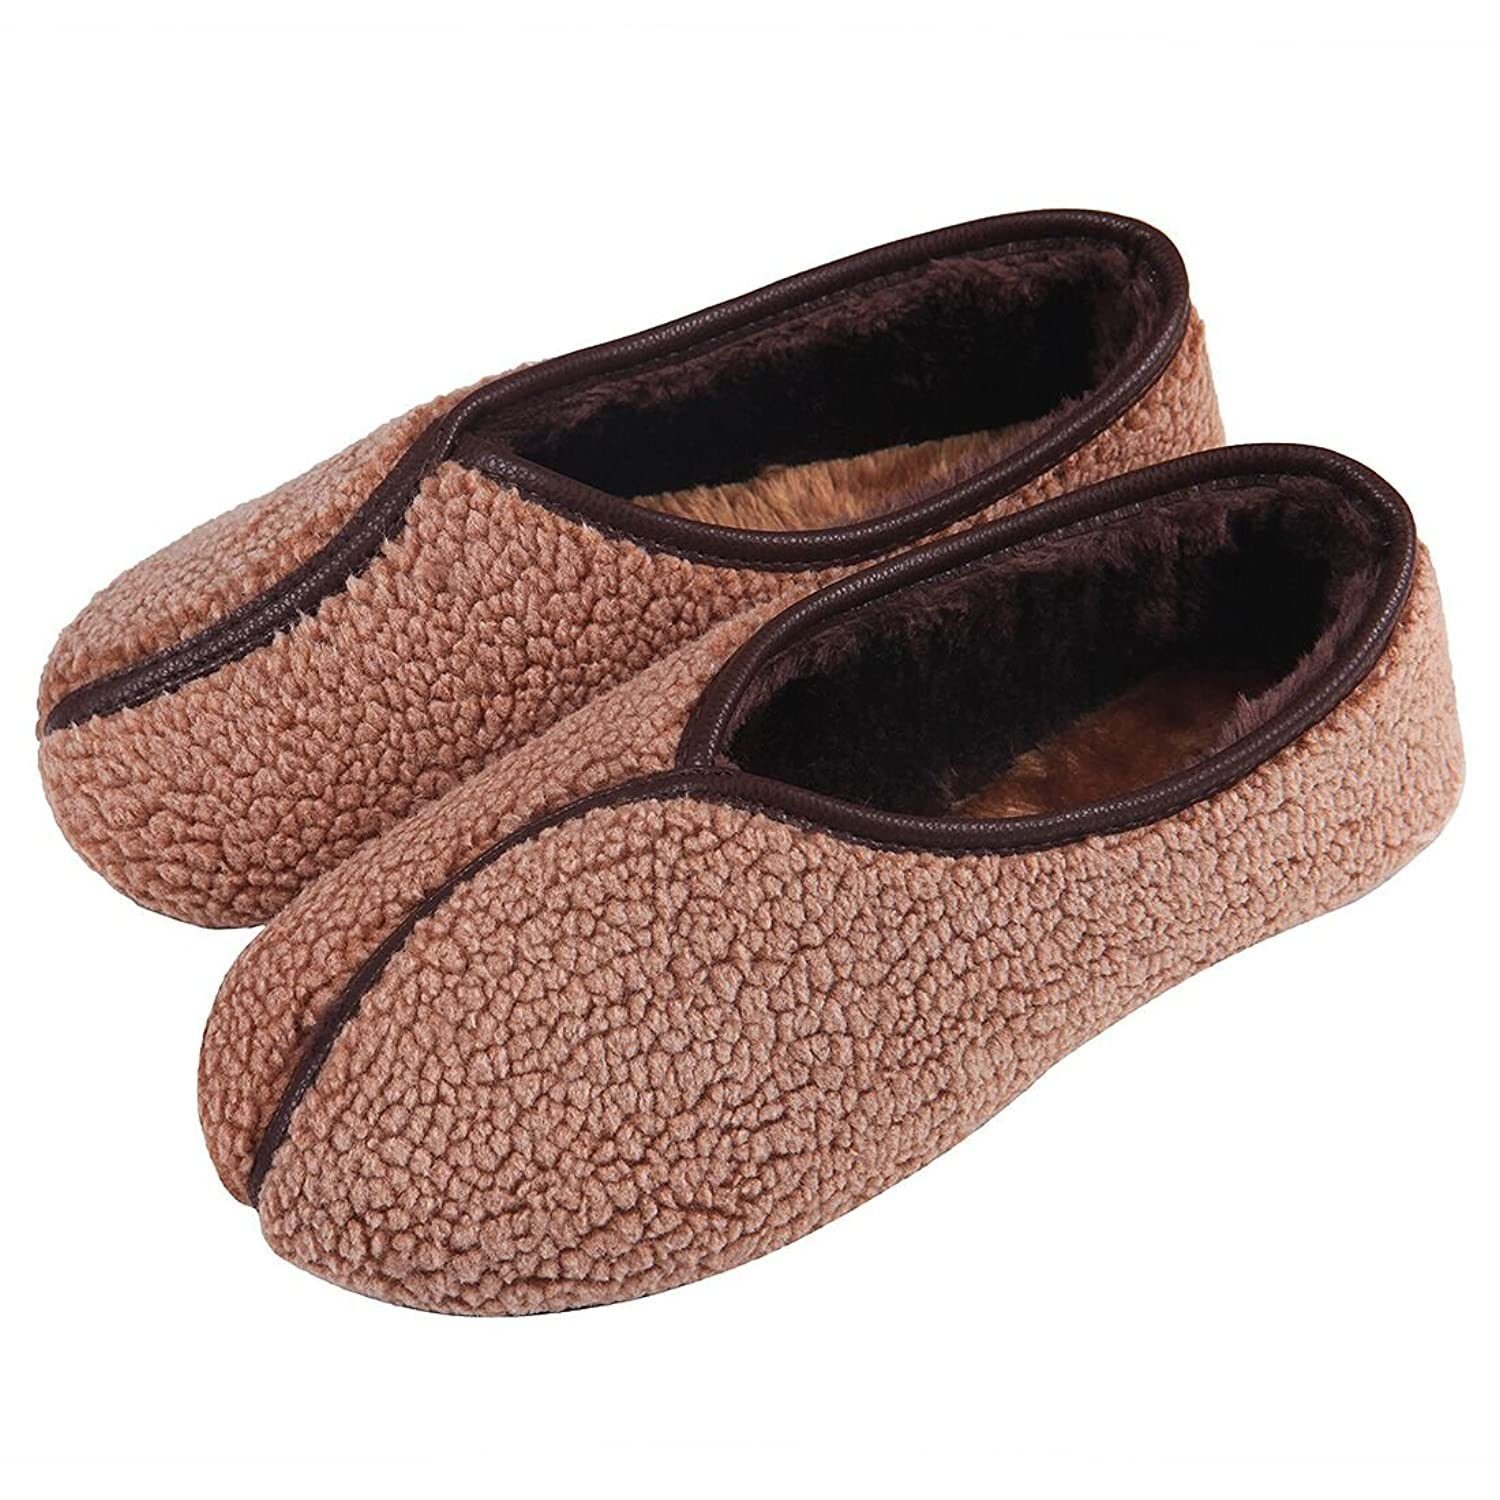 ChicNChic Women Vintage Casual Slippers Cozy Lambswool Classic Flats Shoes Indoor outdoor Shoes